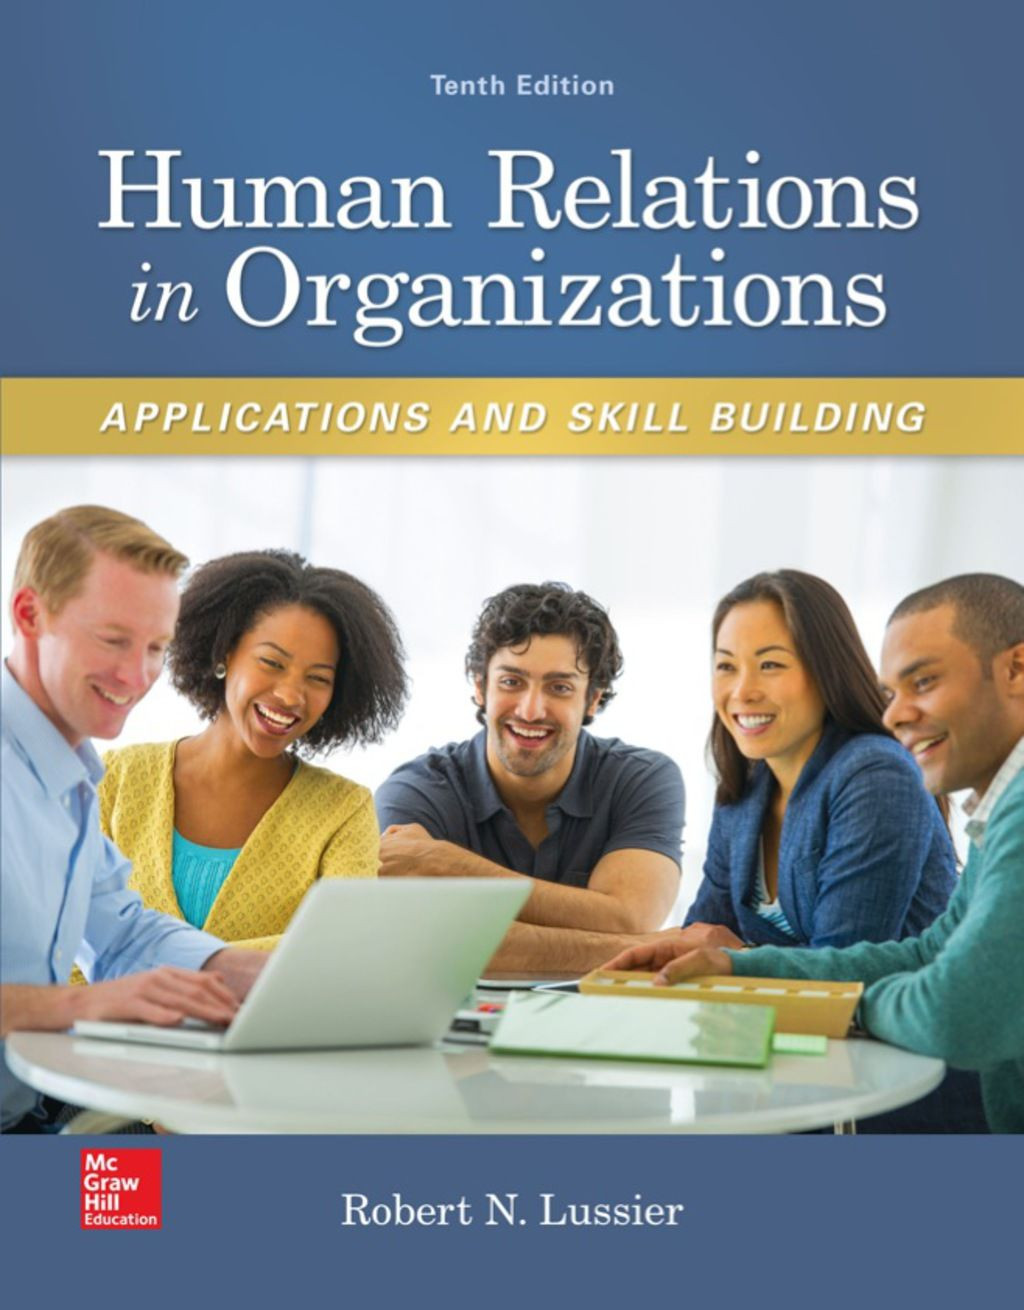 Human Relations in Organizations Applications and Skill